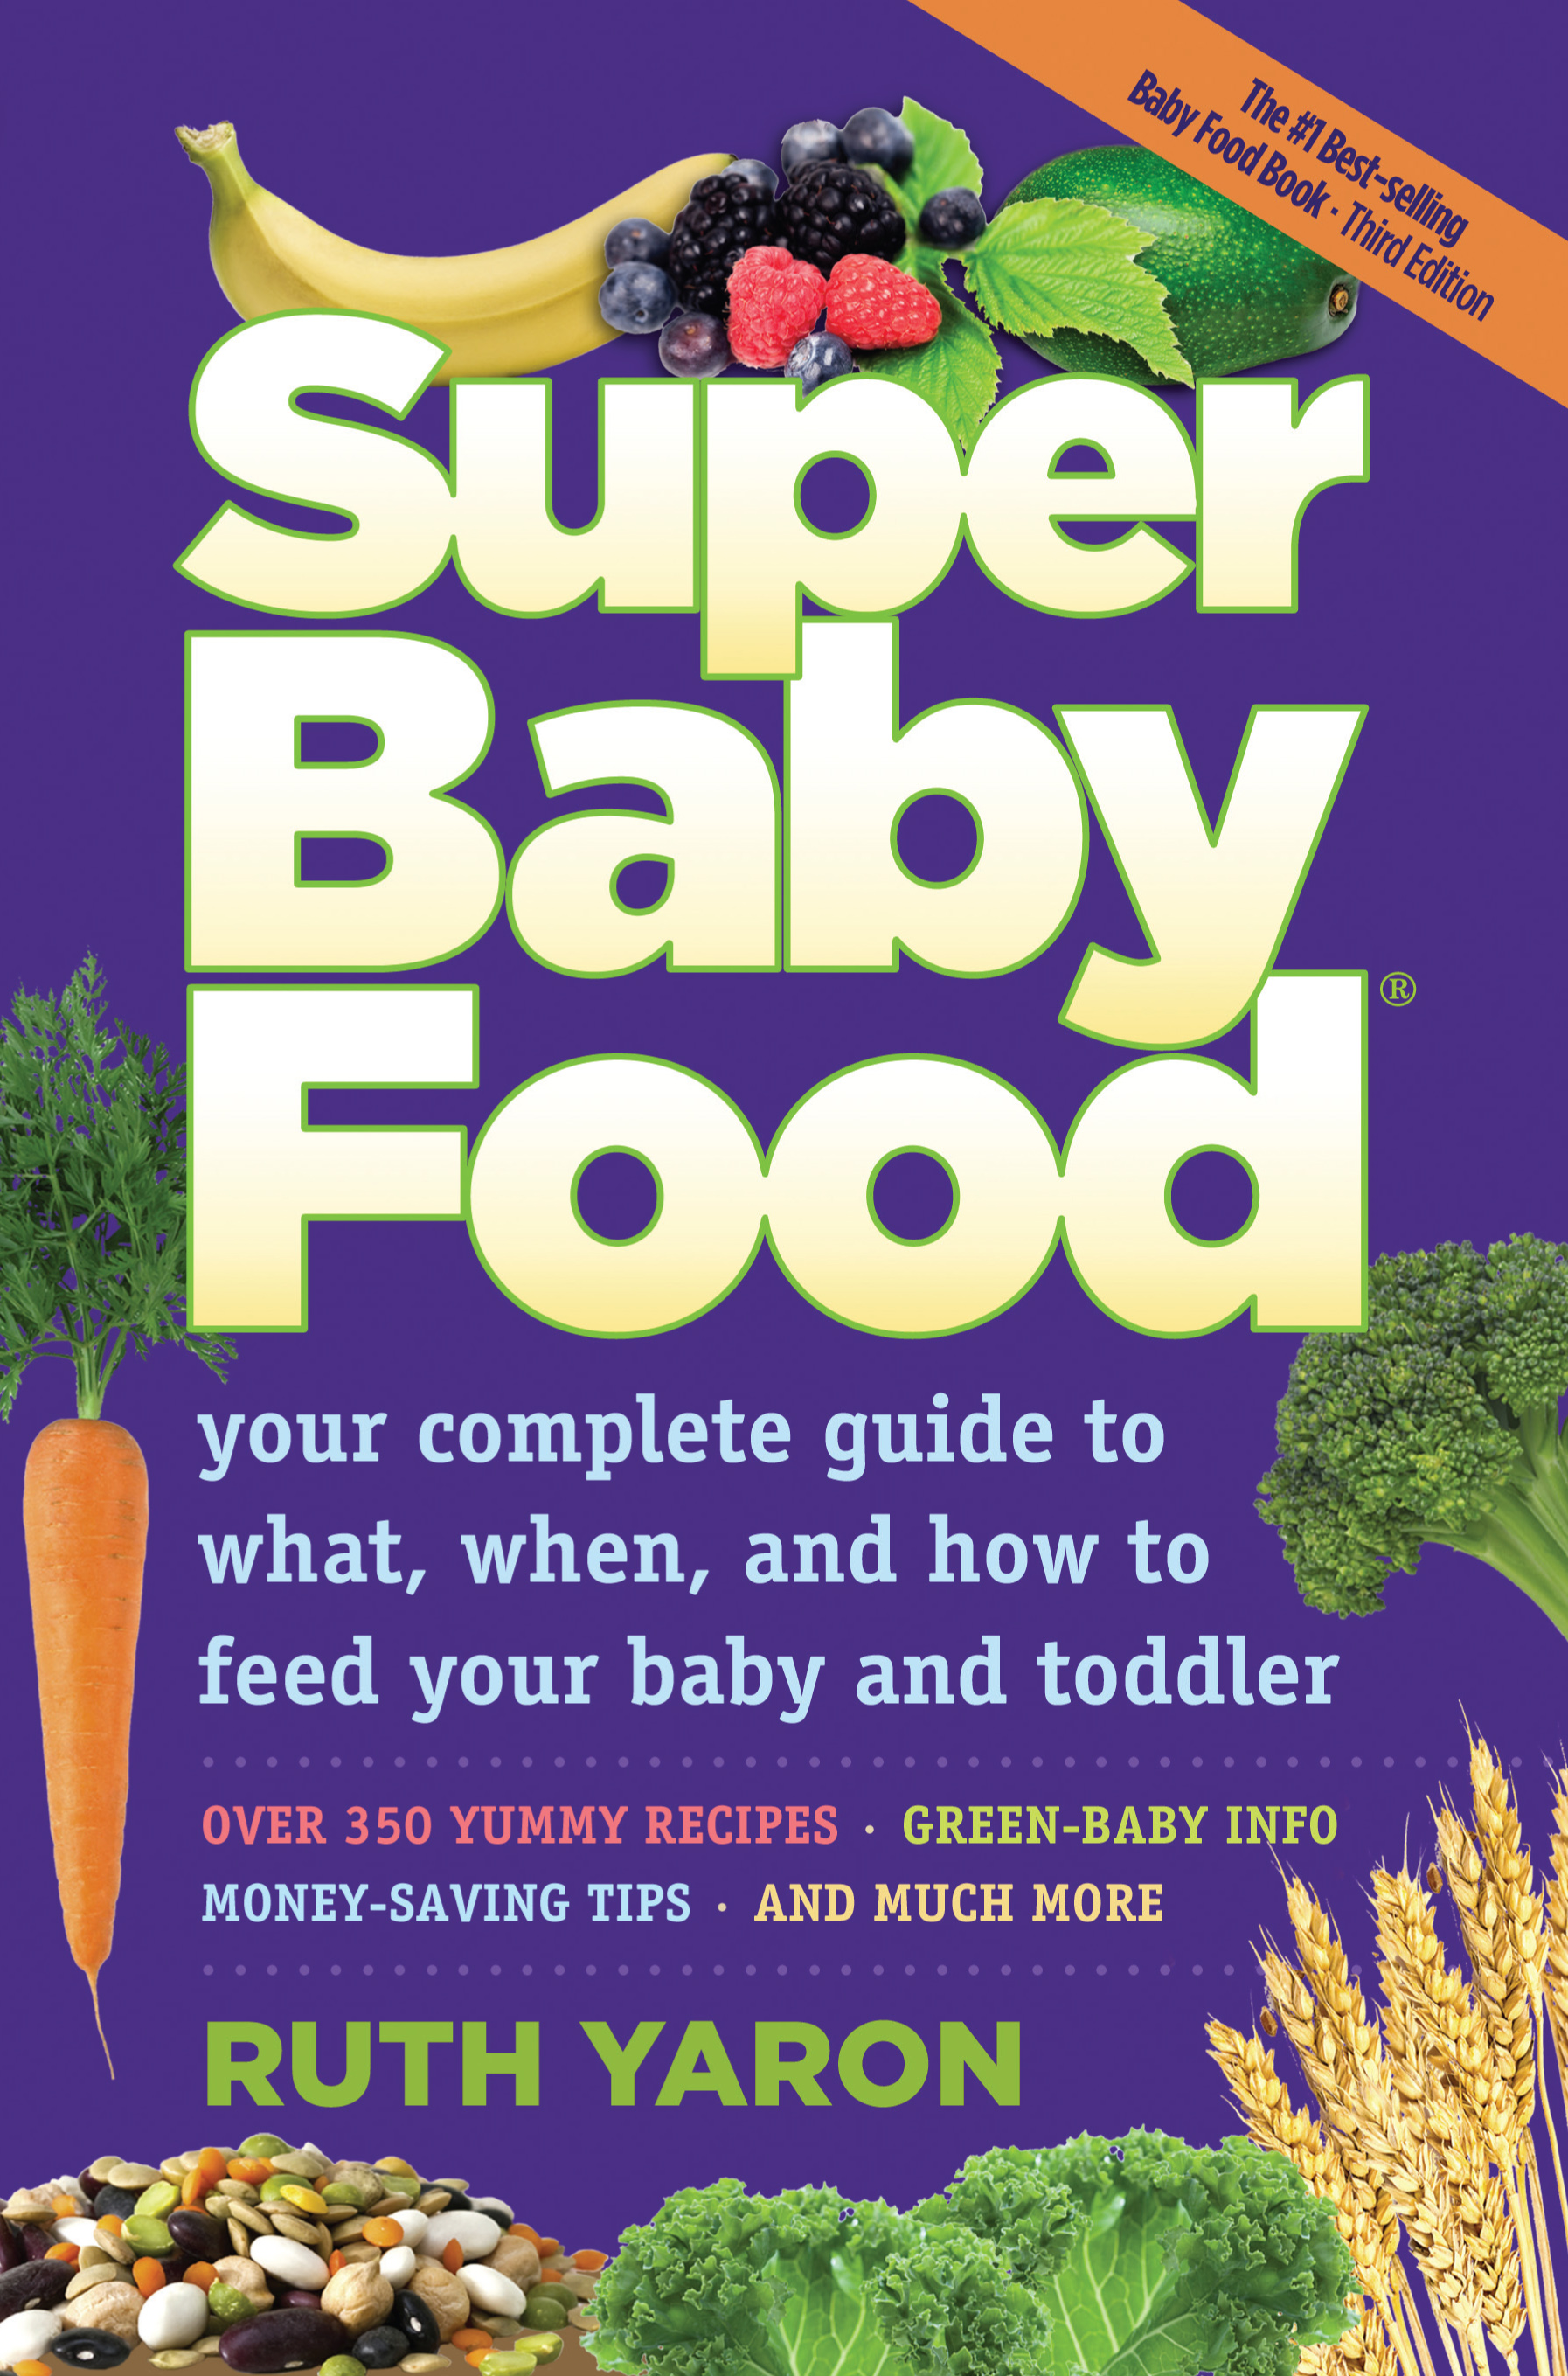 Super Baby Food resource book for feeding and making solids